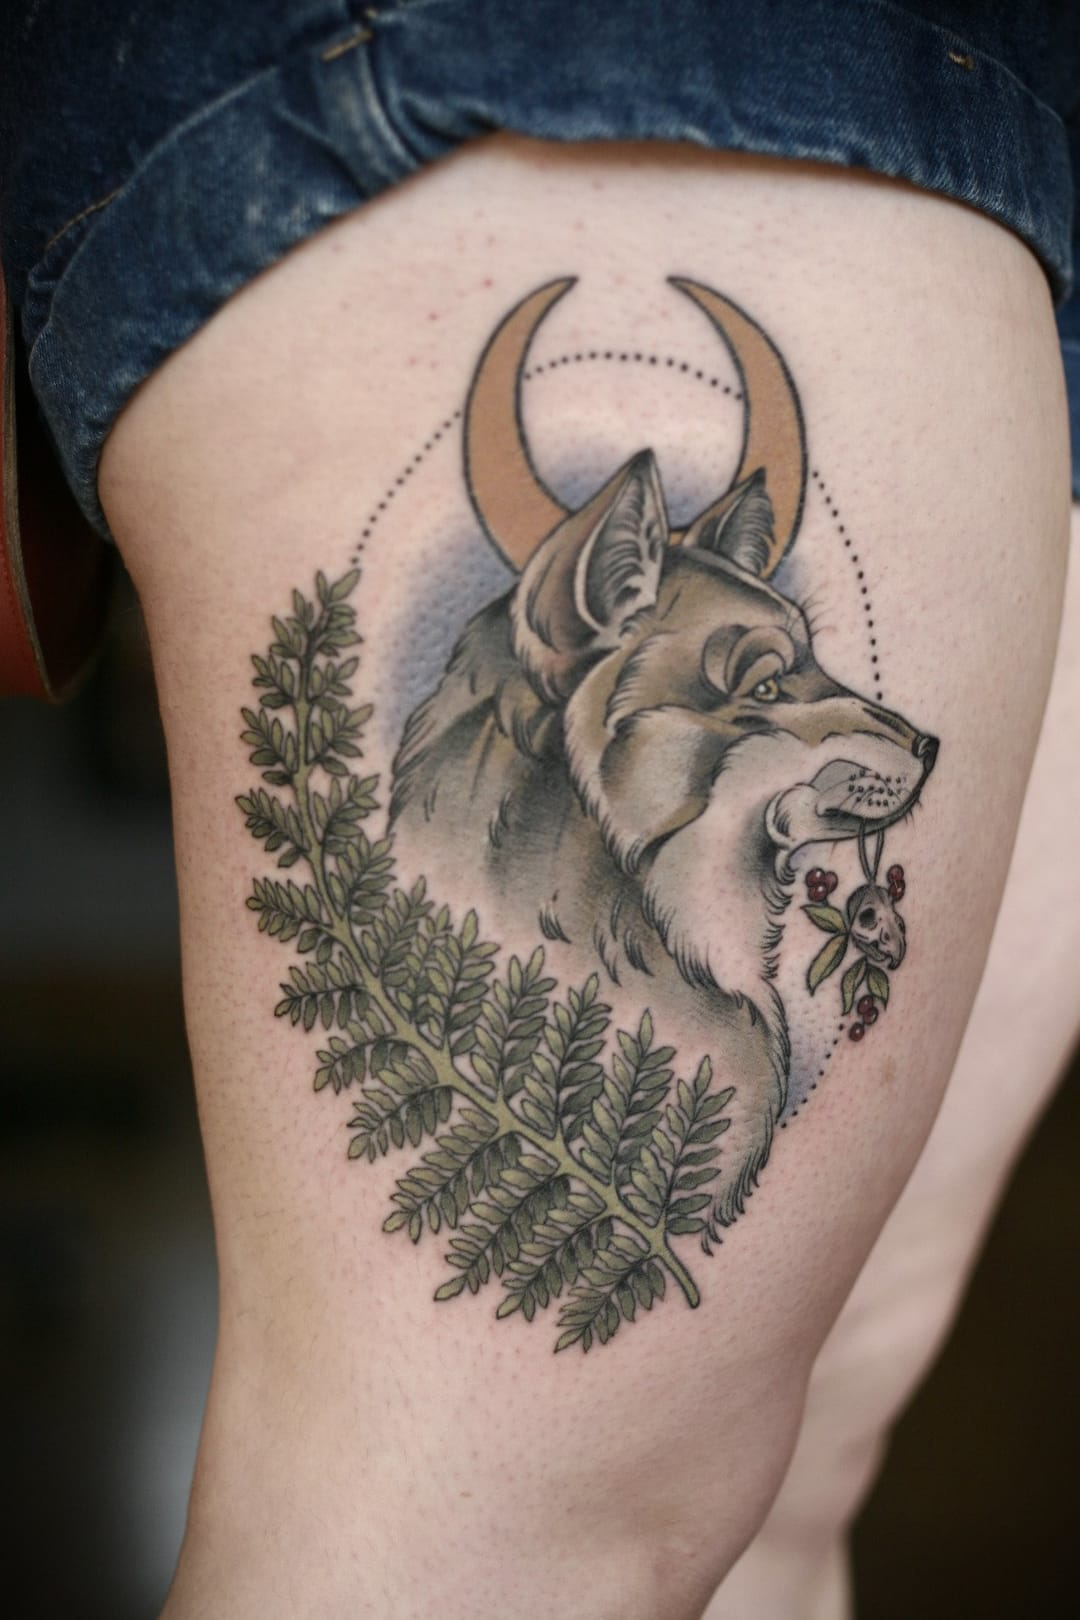 Wolf tattoo by Kirsten Holliday #wolf #kirstenholliday #mycalvins #moon #nature